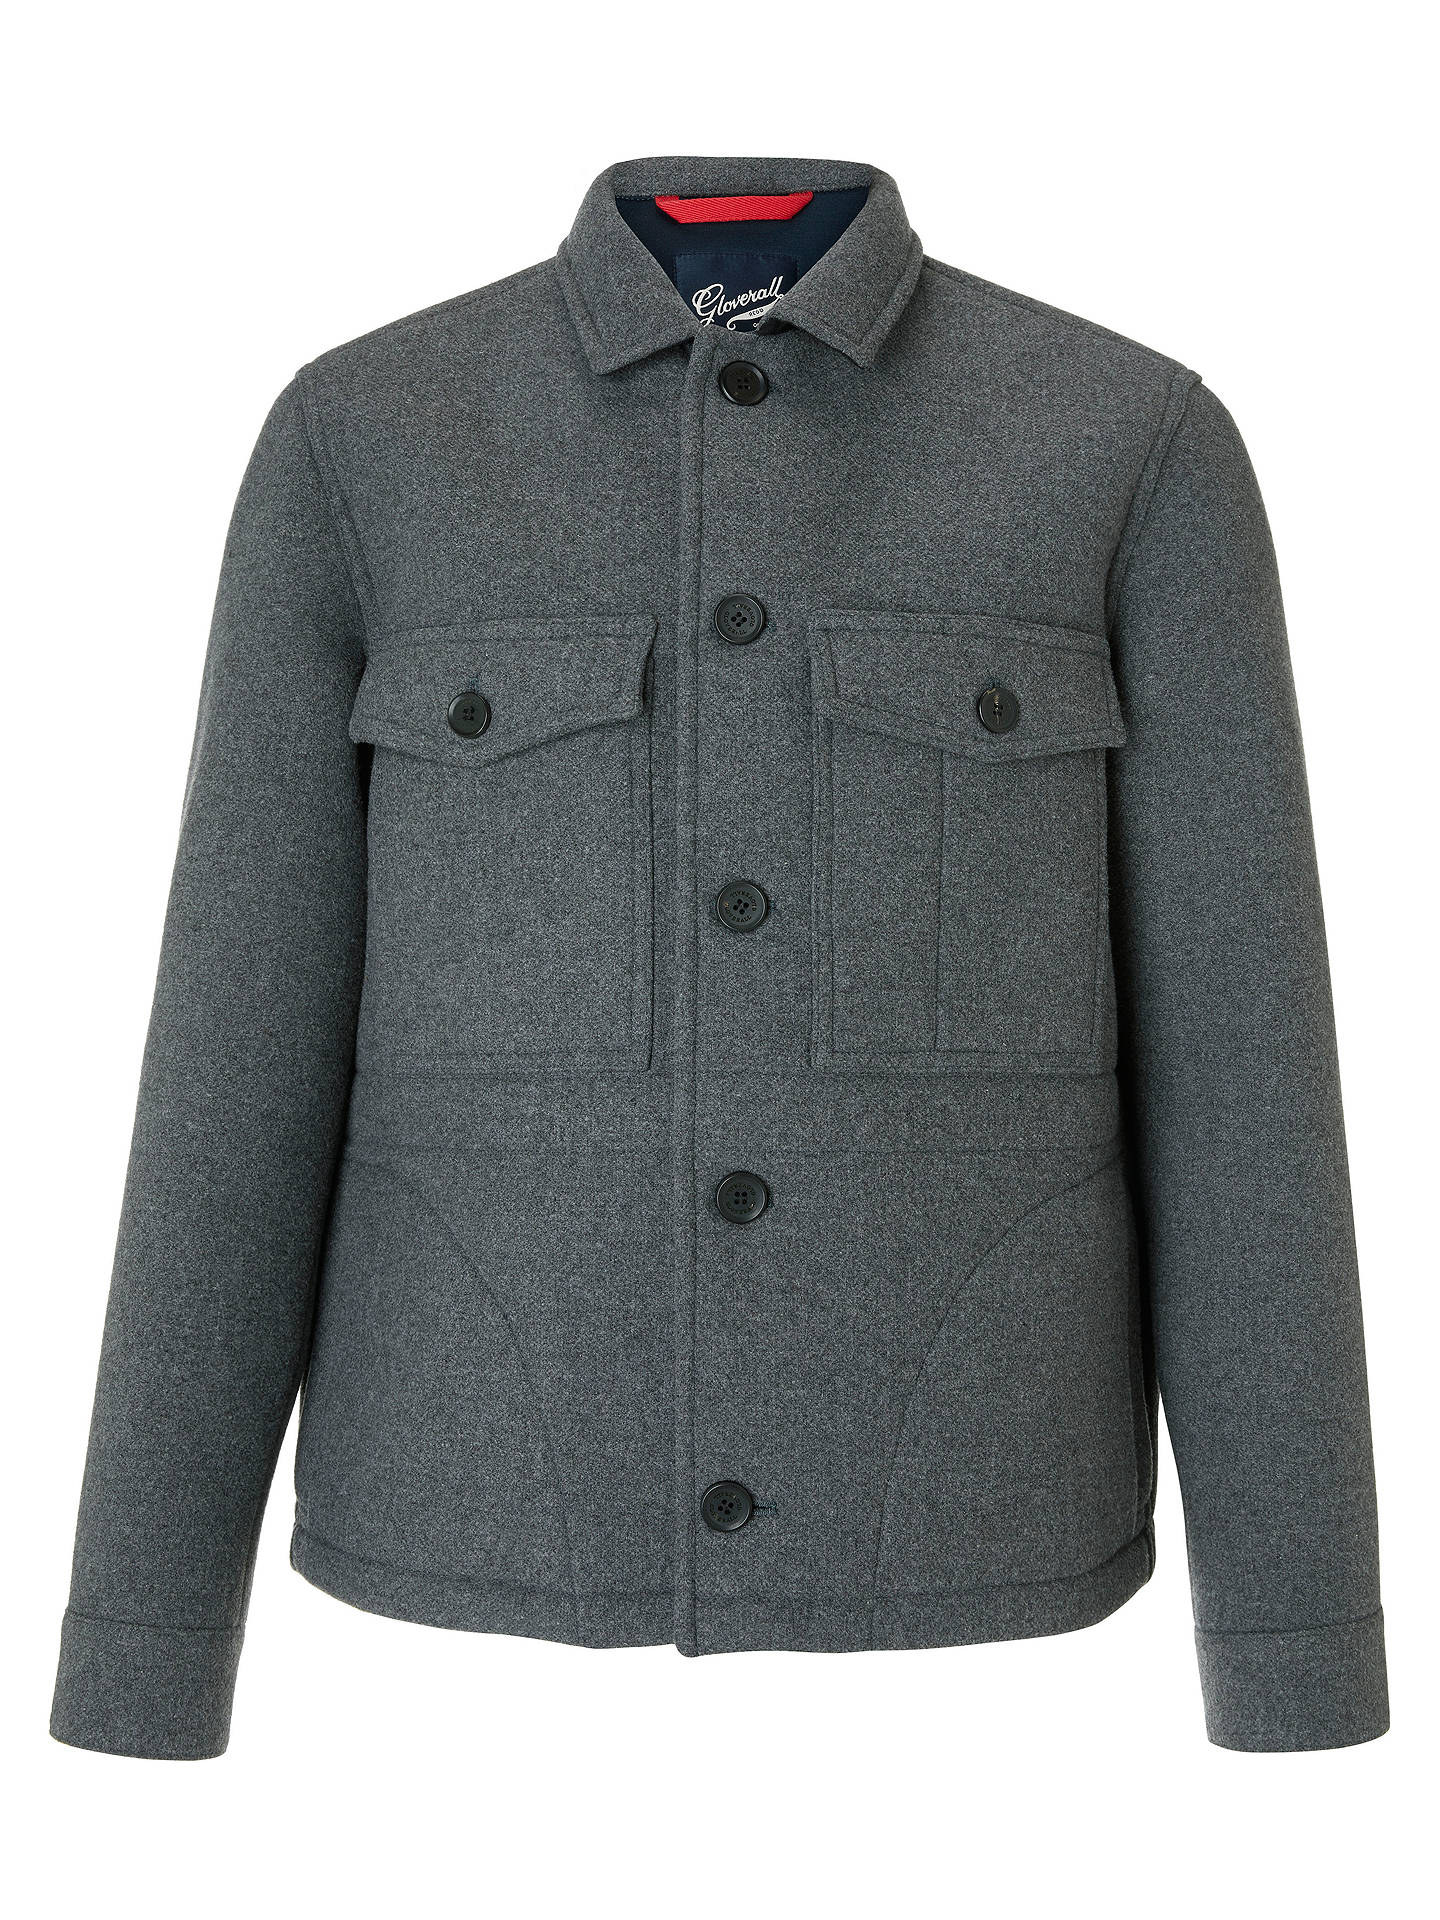 BuyGloverall for John Lewis & Partners Workwear Jacket, Grey, S Online at johnlewis.com